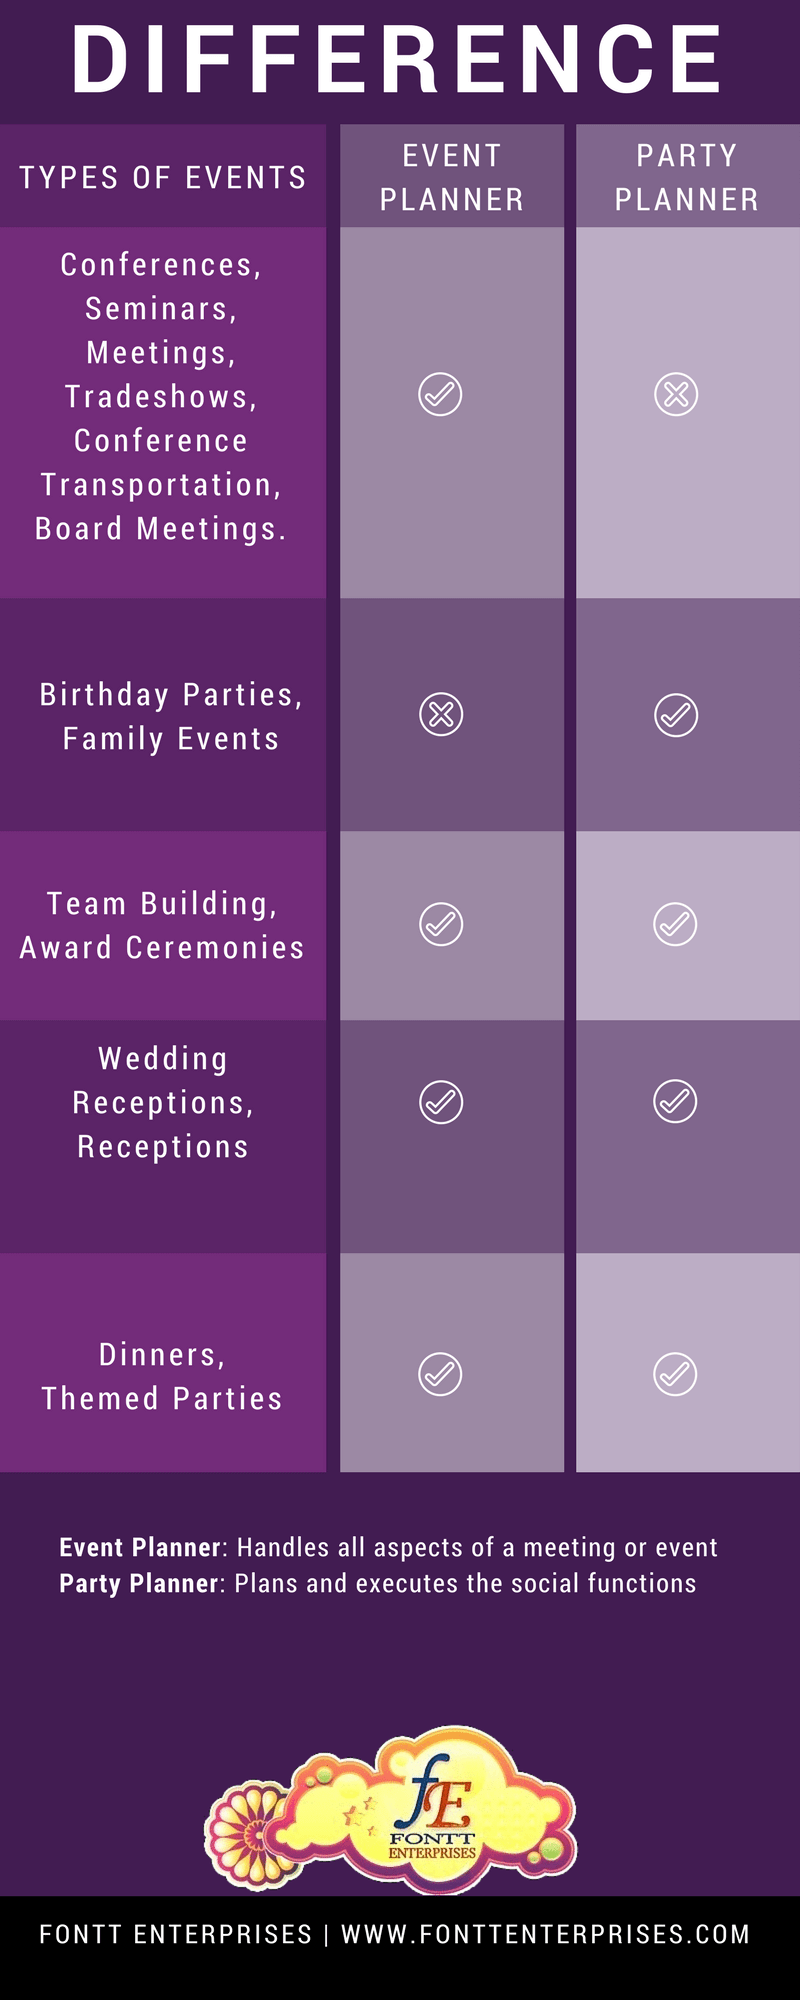 What Kind of Planner Are You? - Infographic